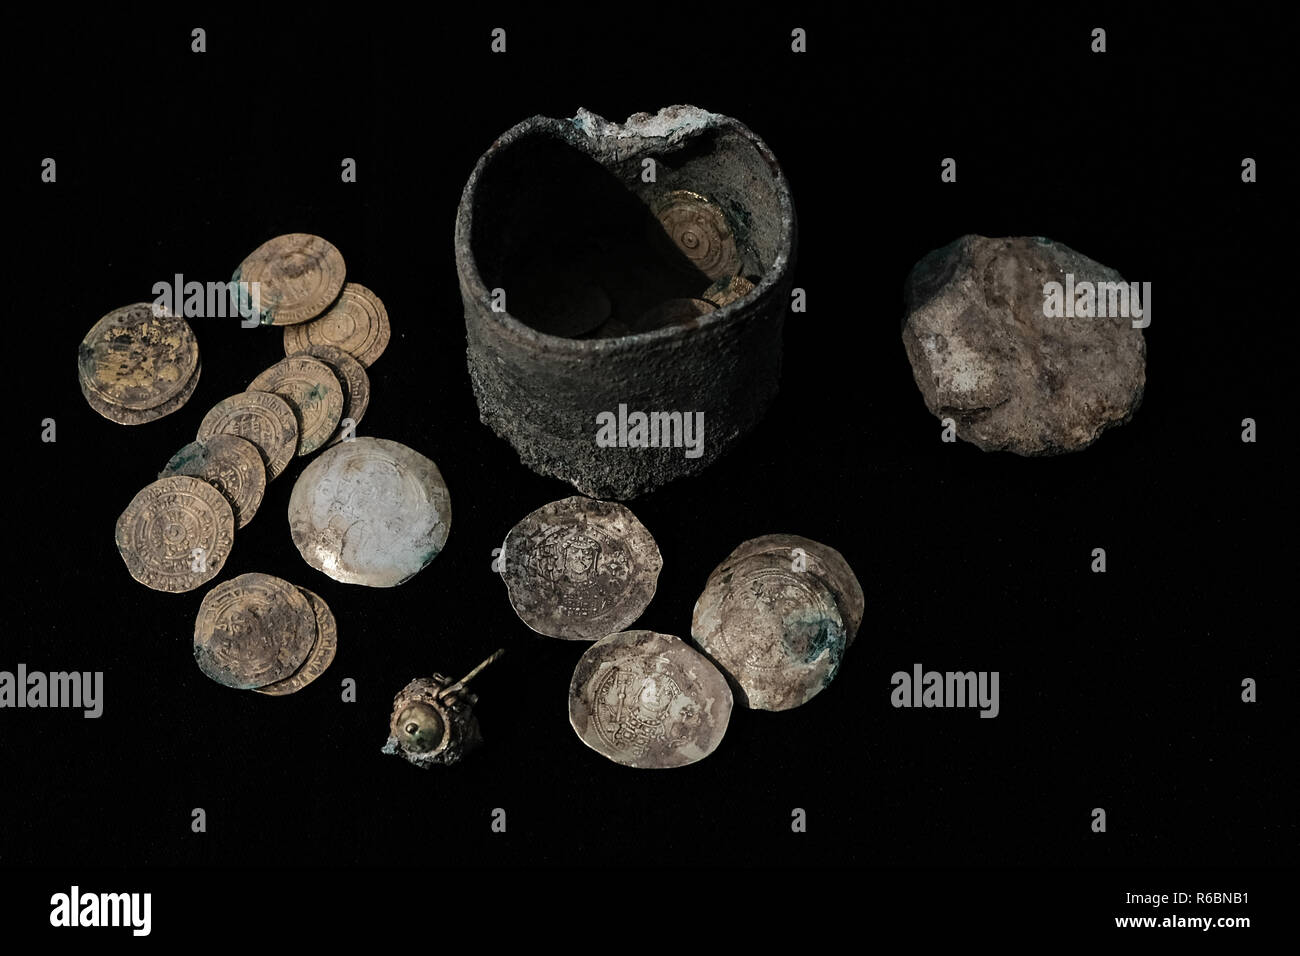 Caesarea, Israel. 3rd December, 2018. A cache of rare gold coins and a 900 year old gold earring were discovered at the Port of Caesarea during extens - Stock Image